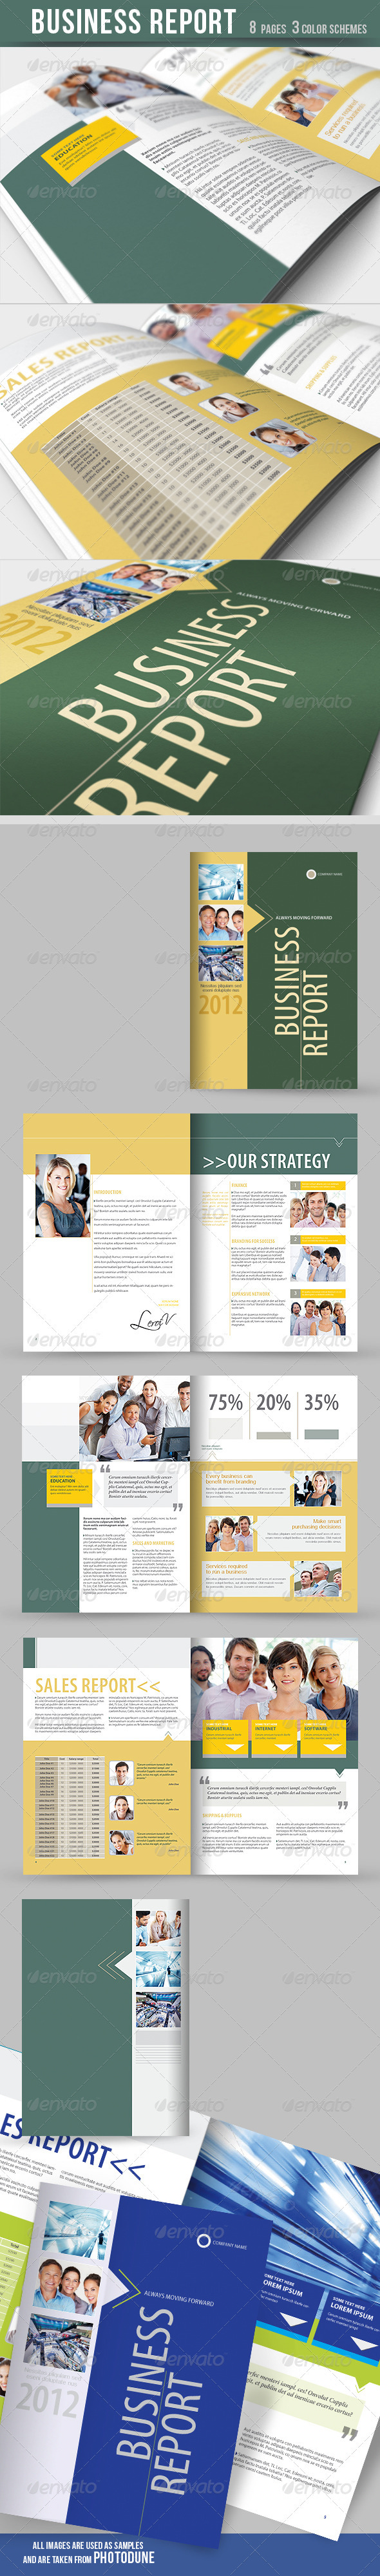 GraphicRiver Business Report Brochure 3 Color Schemes 2195306